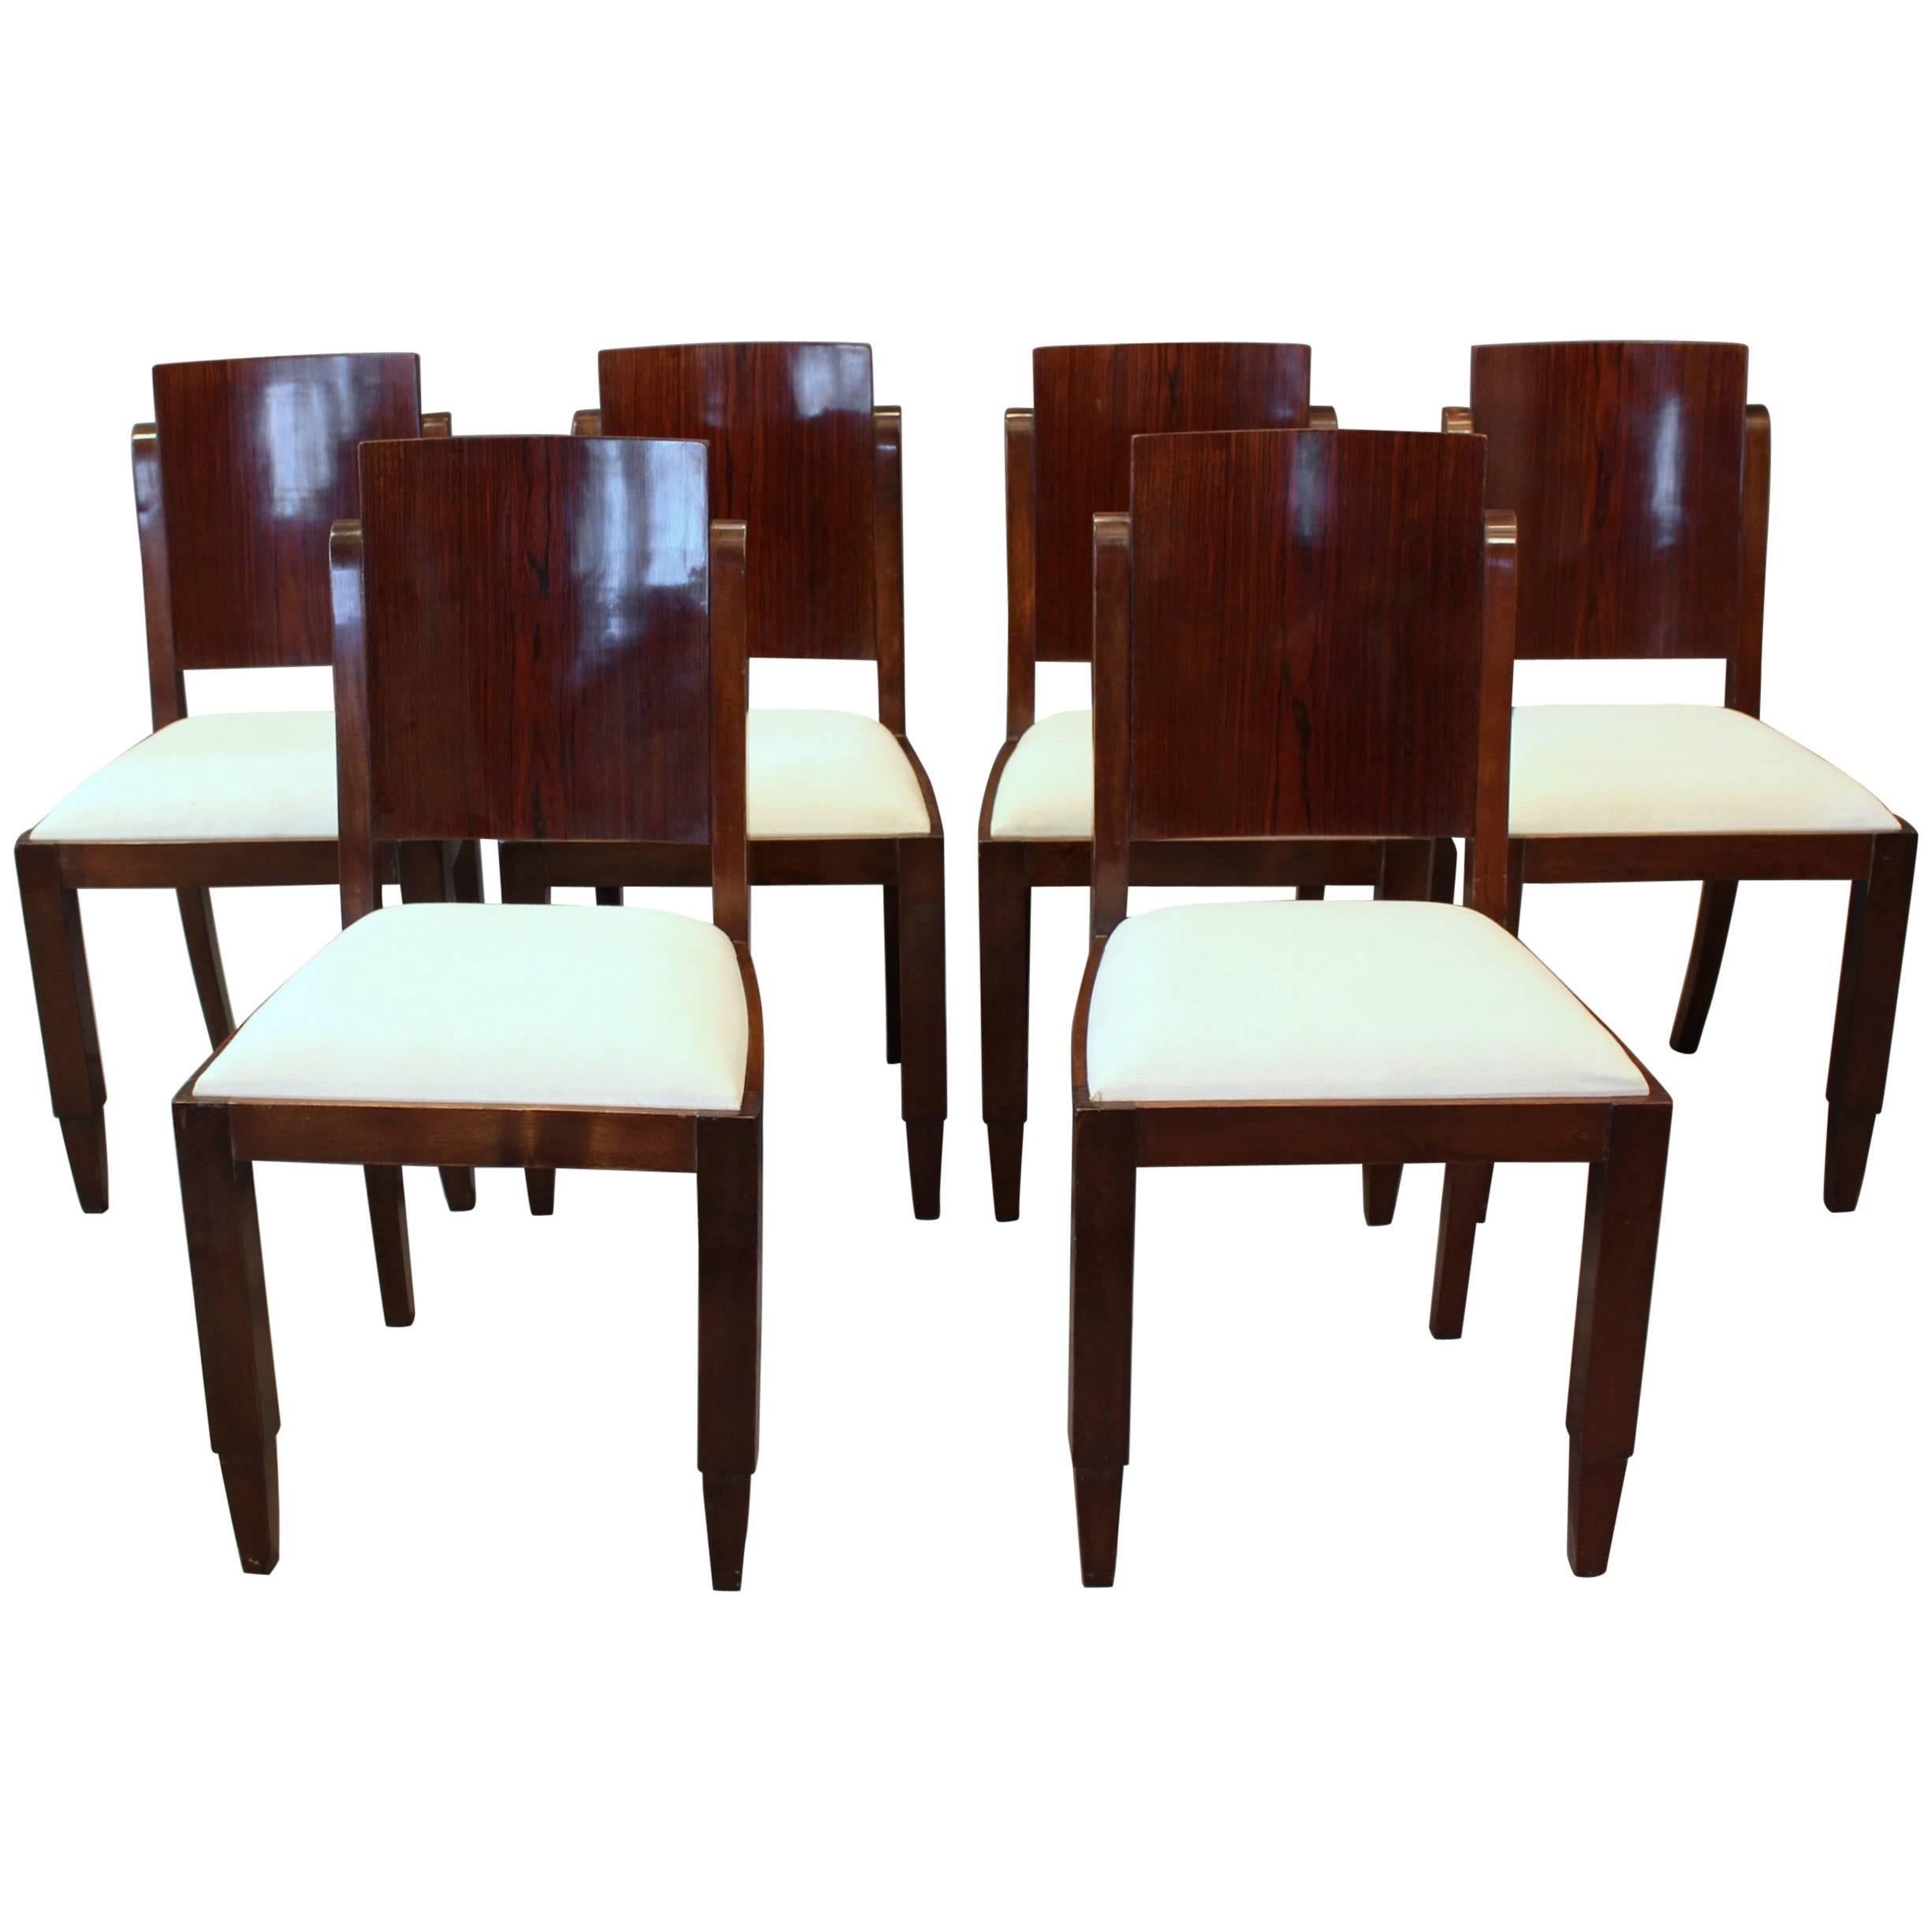 Set of Six French Art Deco Rosewood Dining Chairs